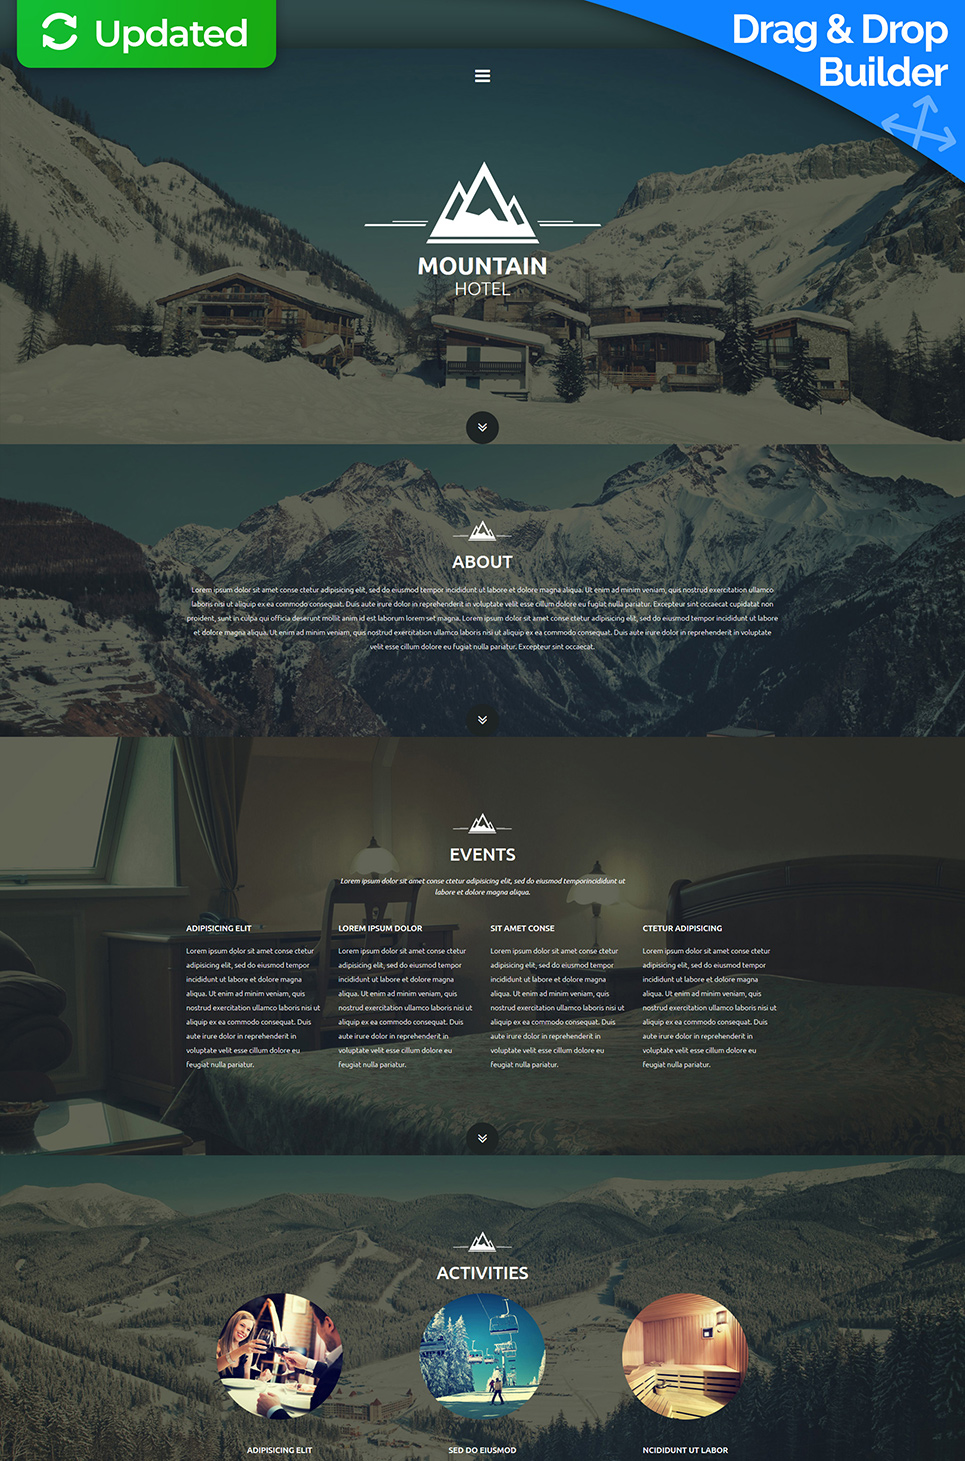 Single-page Hotel Website Template - image